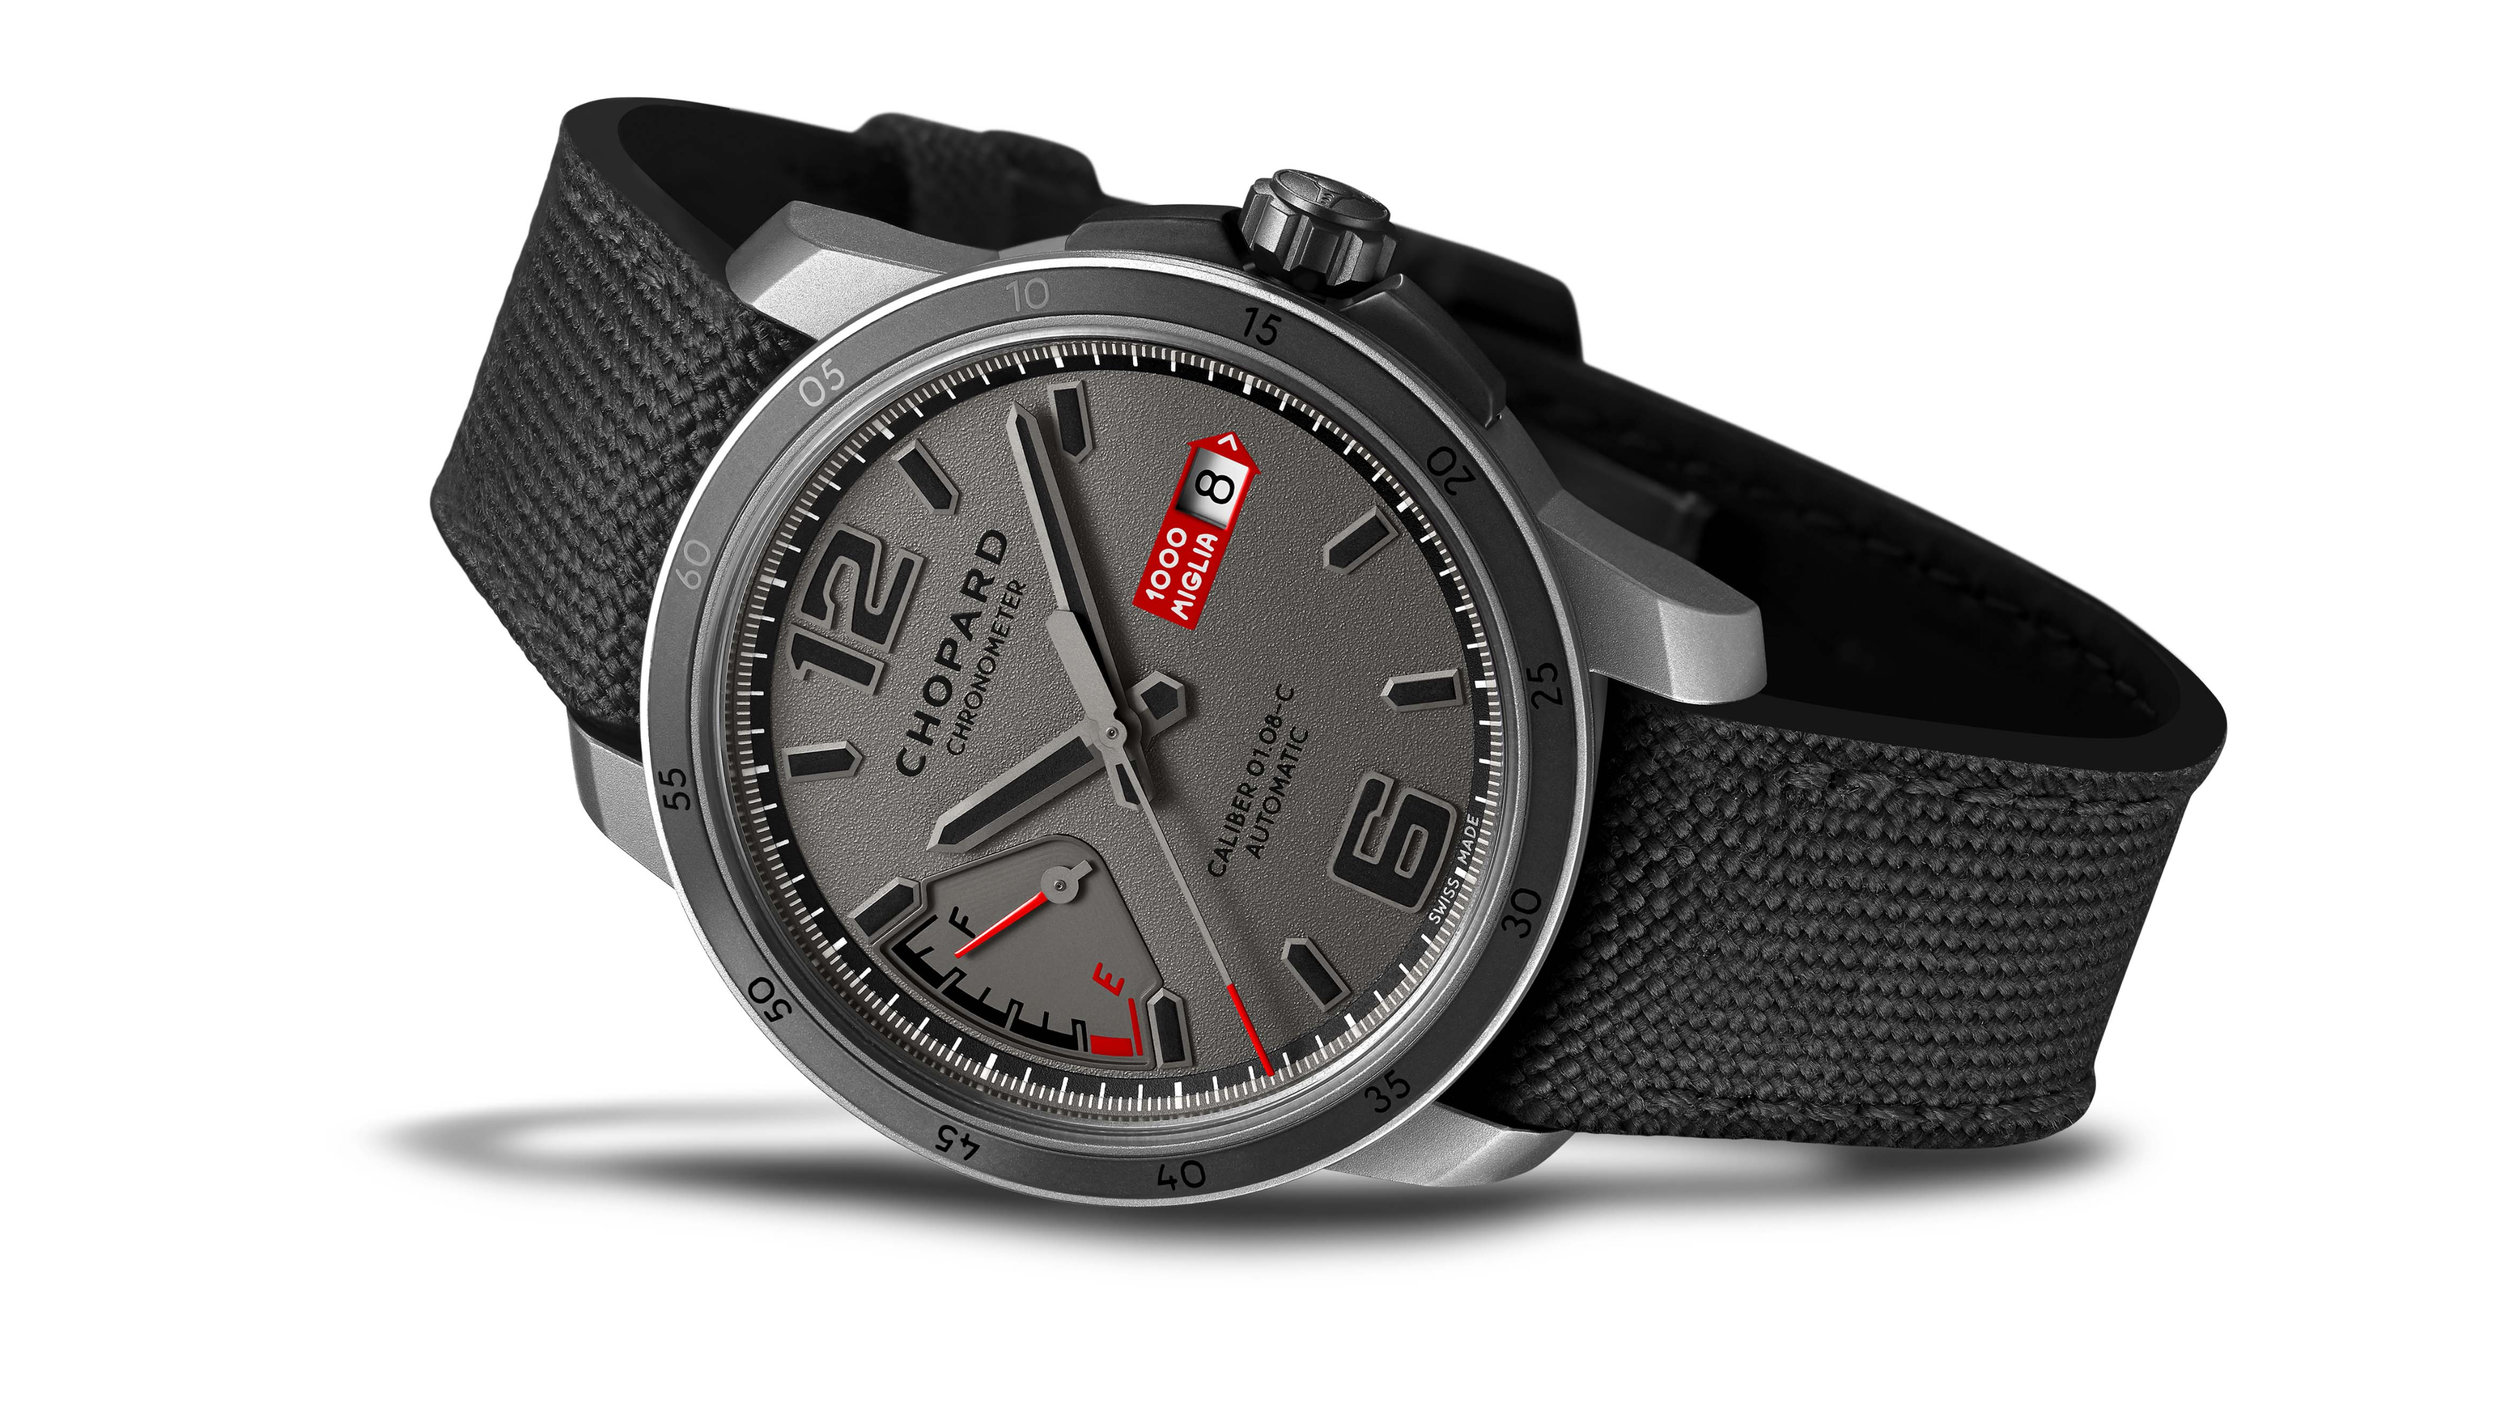 The Mille Miglia GTS Power Control Grigio Speciale - 43mm watch in titanium featuring a stippled anthracite grey ruthenium dial and equipped with a mechanical movement with automatic winding. The watch is presented on a grey Cordura fabric bracelet. Limited to 1,000 pieces.